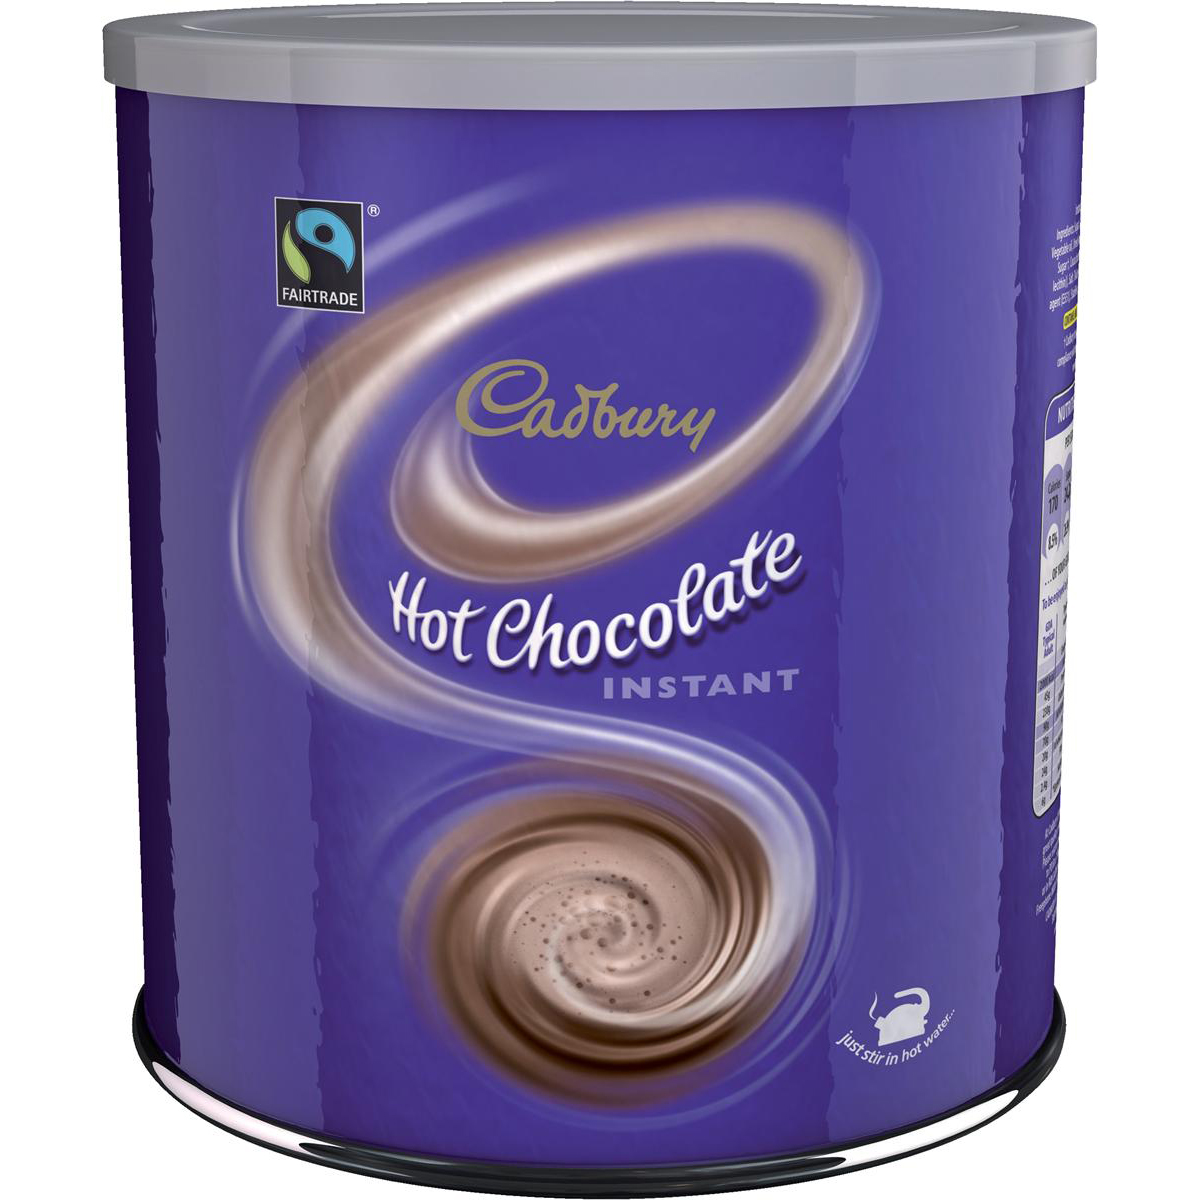 Chocolate or malt or other hot beverages Cadbury Chocolate Break Fairtrade Hot Chocolate Powder 70 Servings 2Kg Ref 403136